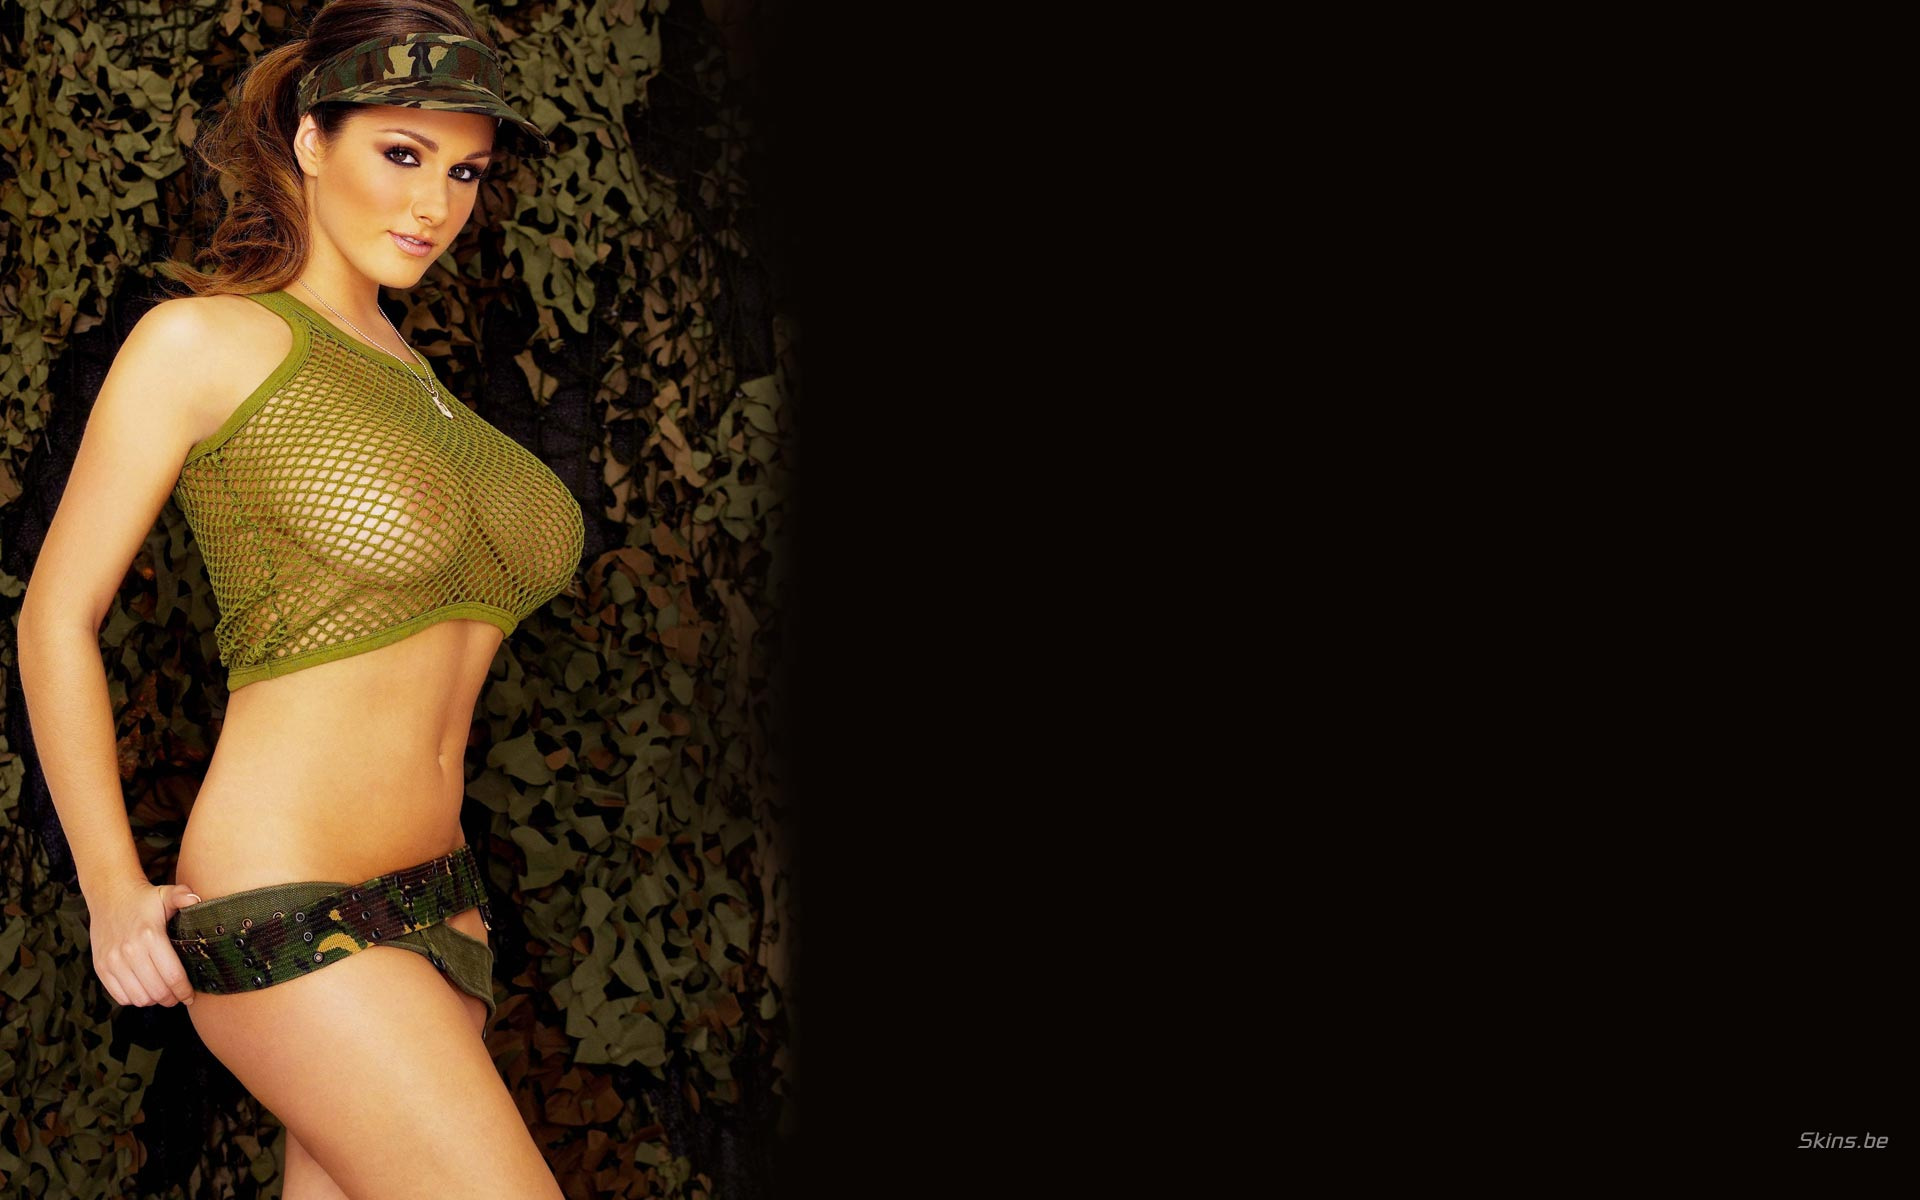 Ms Girl Wallpaper Download Lucy Pinder Wallpapers Gallery